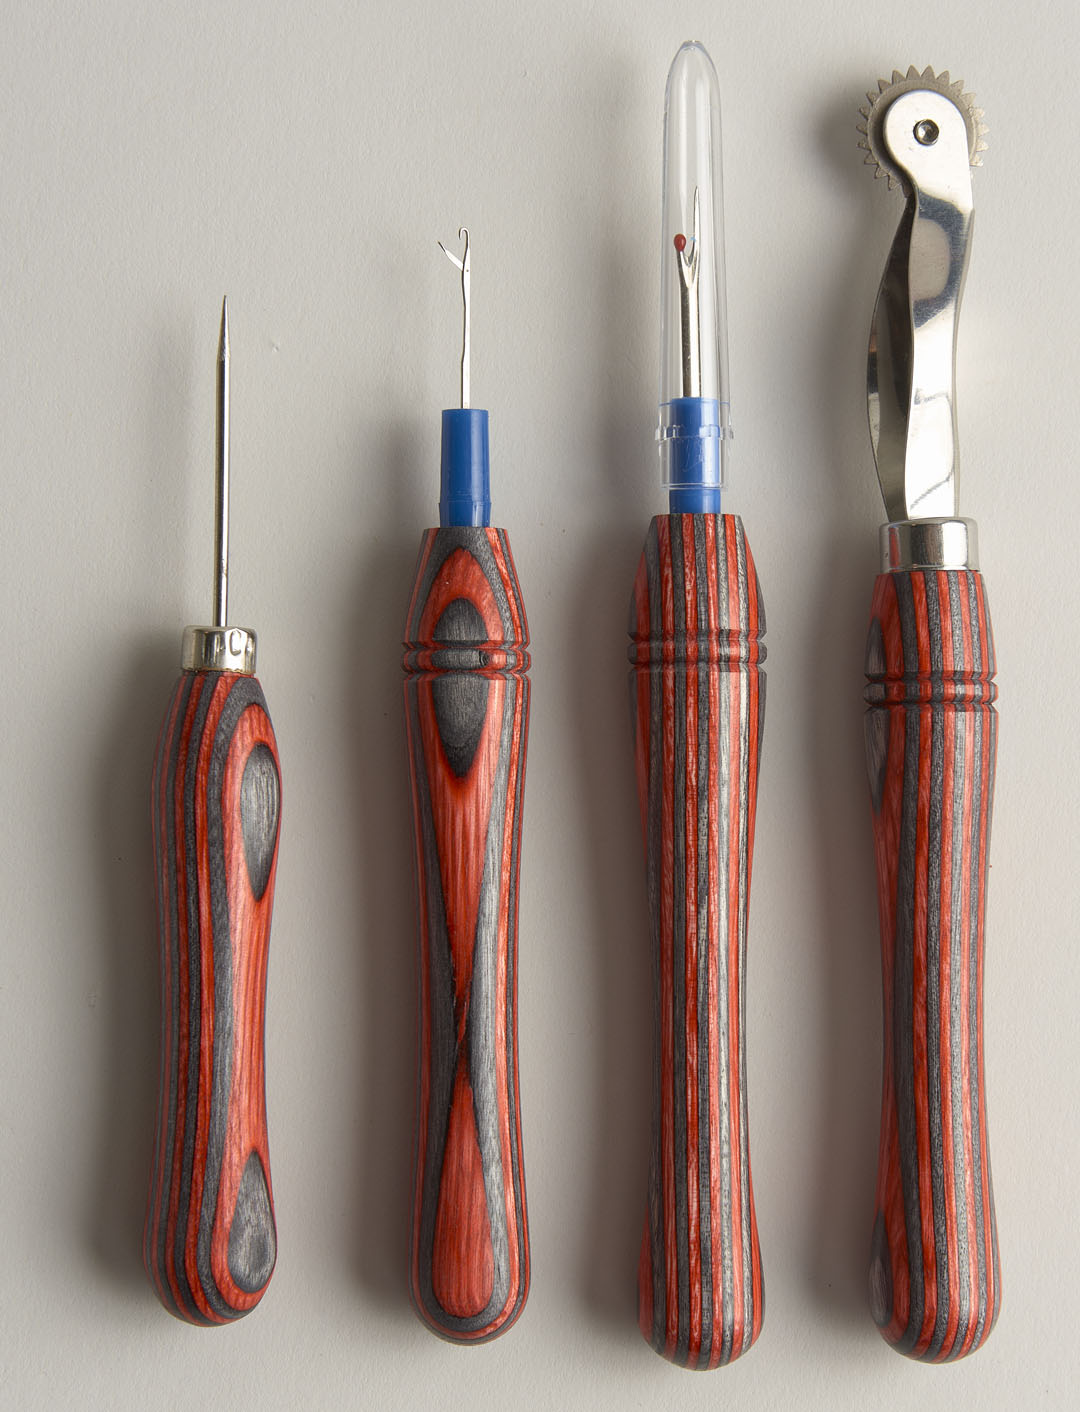 Hand-turned wooden sewing tools